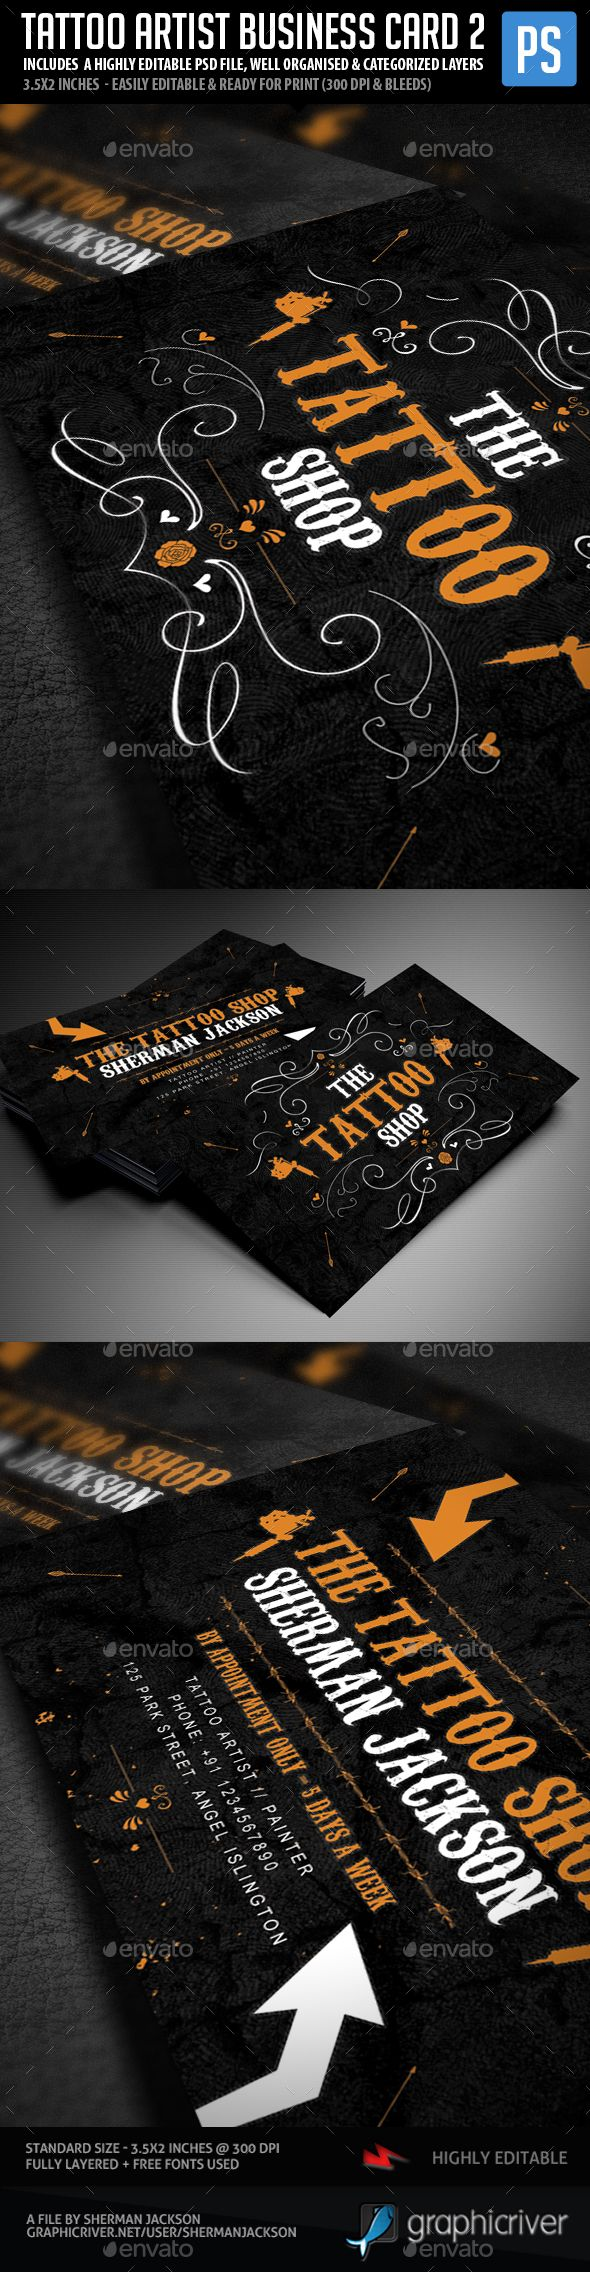 79 best tattoo logo images on pinterest graph design infographic tattoo artist business card design template v2 industry specific business card template psd friedricerecipe Choice Image